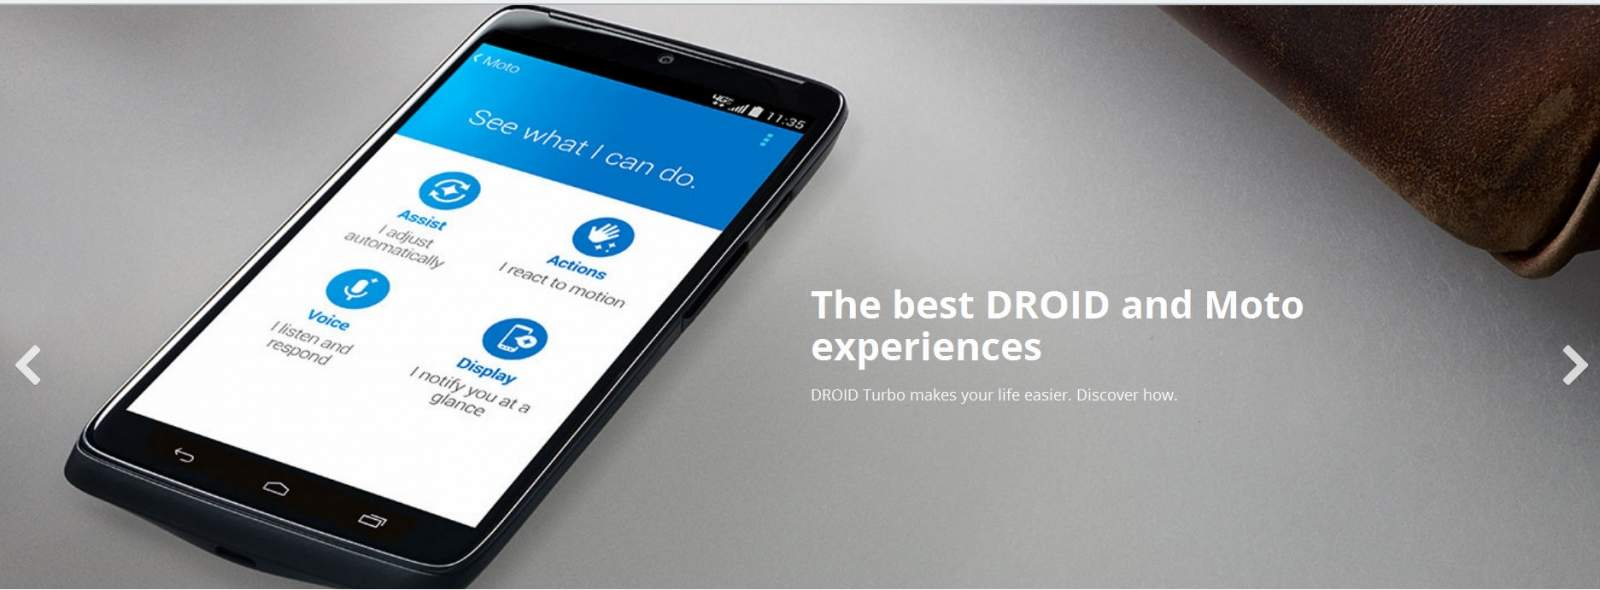 Test Drive Motorola DROID Turbo Lollipop di Website 330a1f43e5